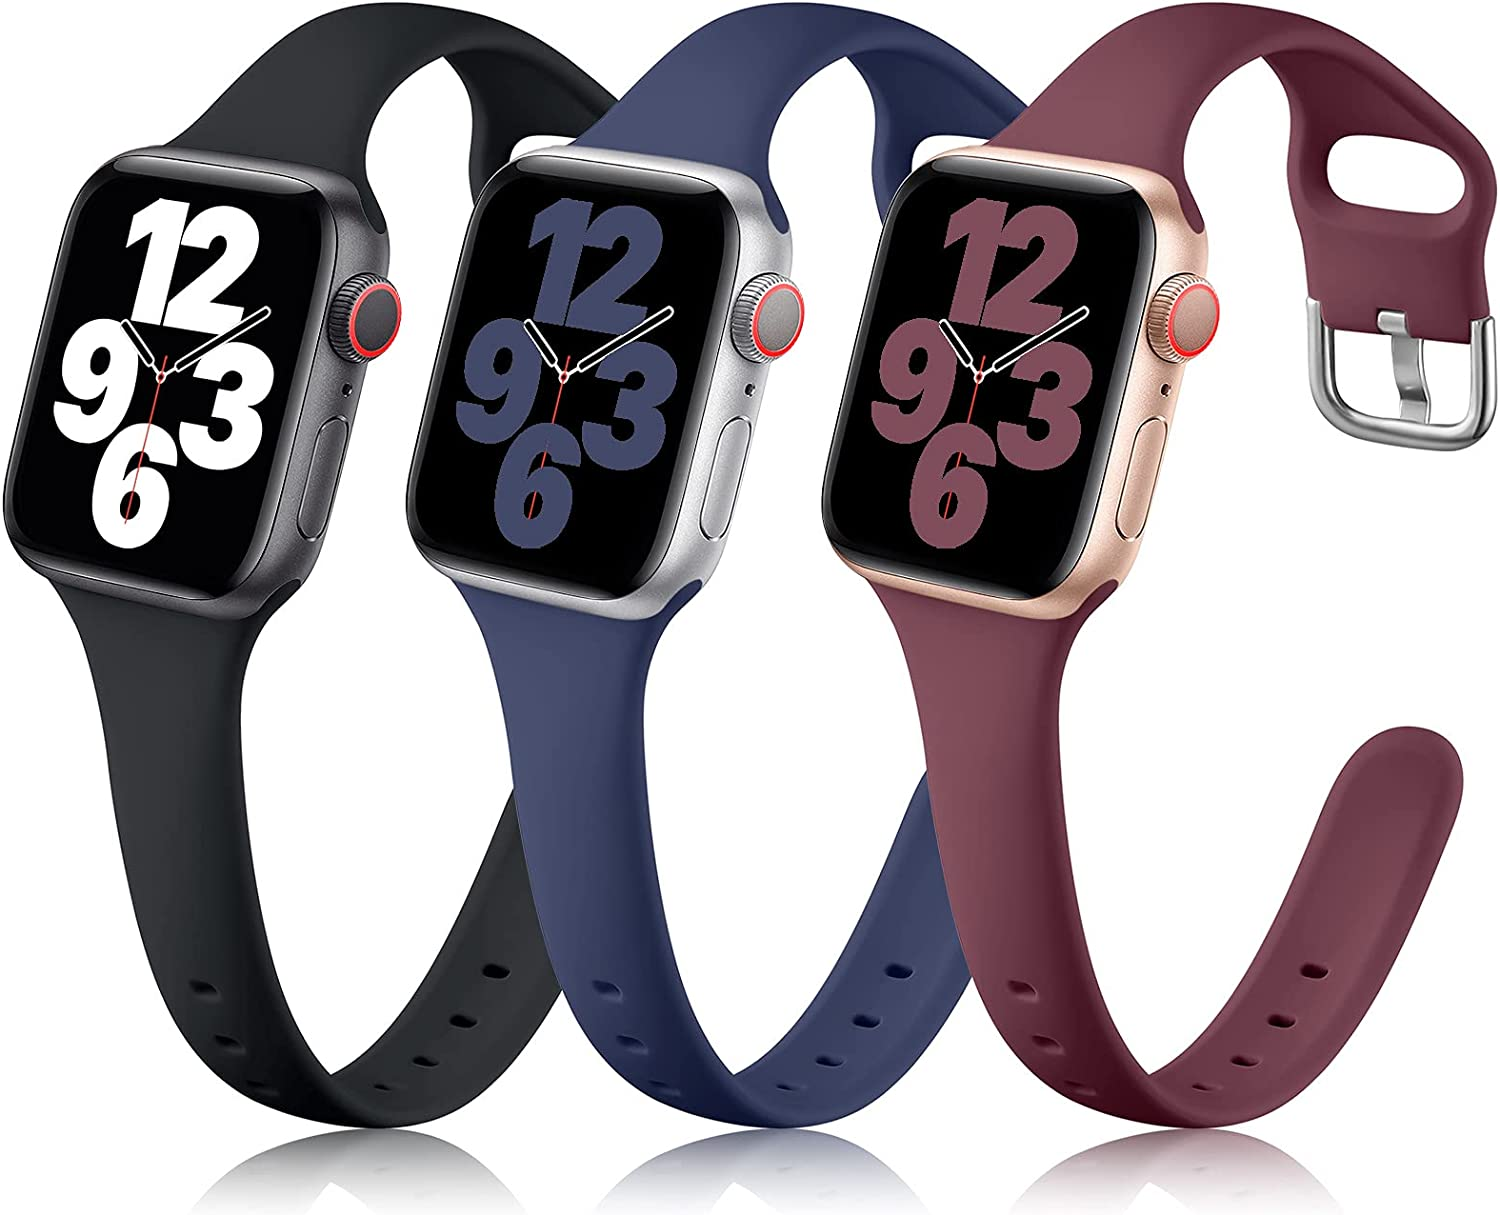 Getino Compatible with Apple Watch Band 40mm 38mm for Women Men iWatch Sport Band Series SE 6 5 4 3 2 1, Soft Slim Flexible Silicone Replacement Strap 3 Pack, Black/ Navy/ Wine